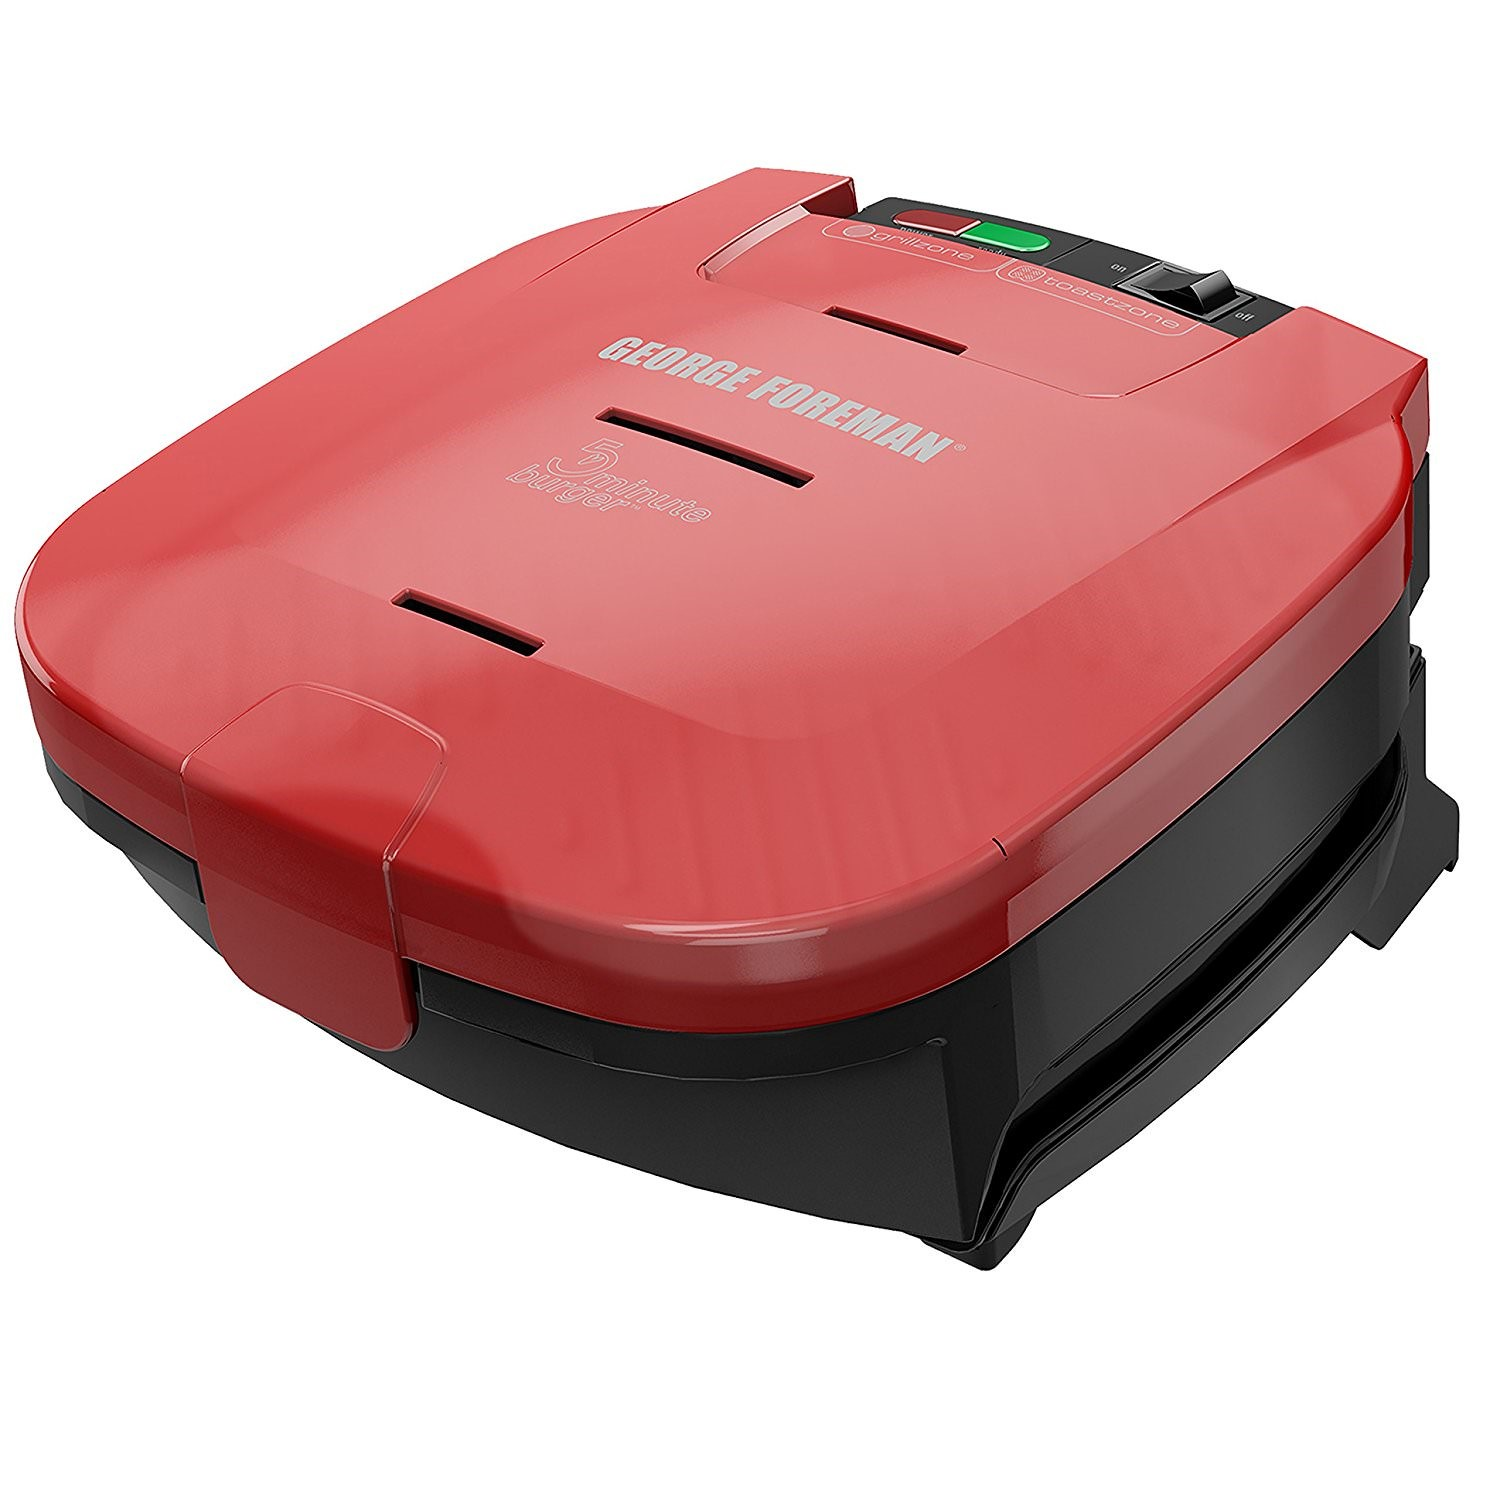 George Foreman 5-Minute Burger Grill, Red, GR1036BTR